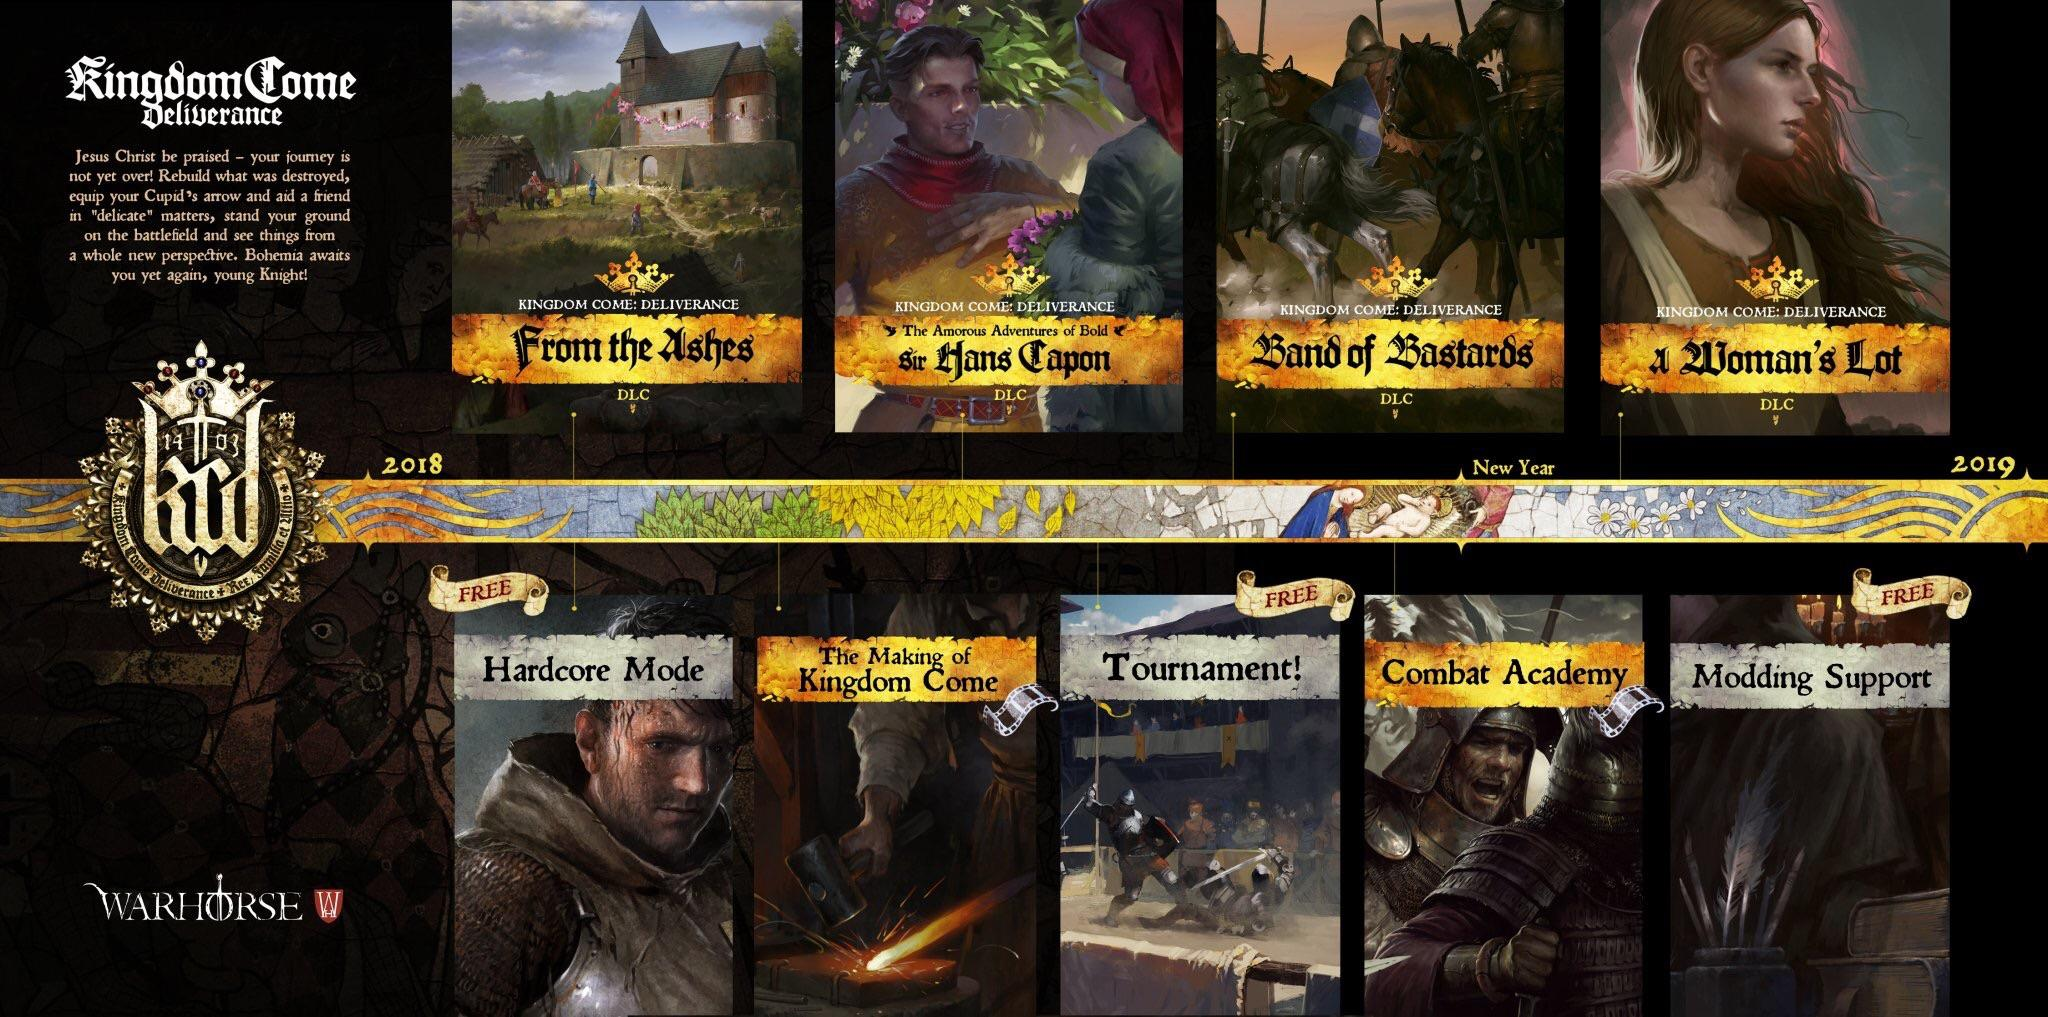 Kingdom Come: Deliverance DLC Roadmap